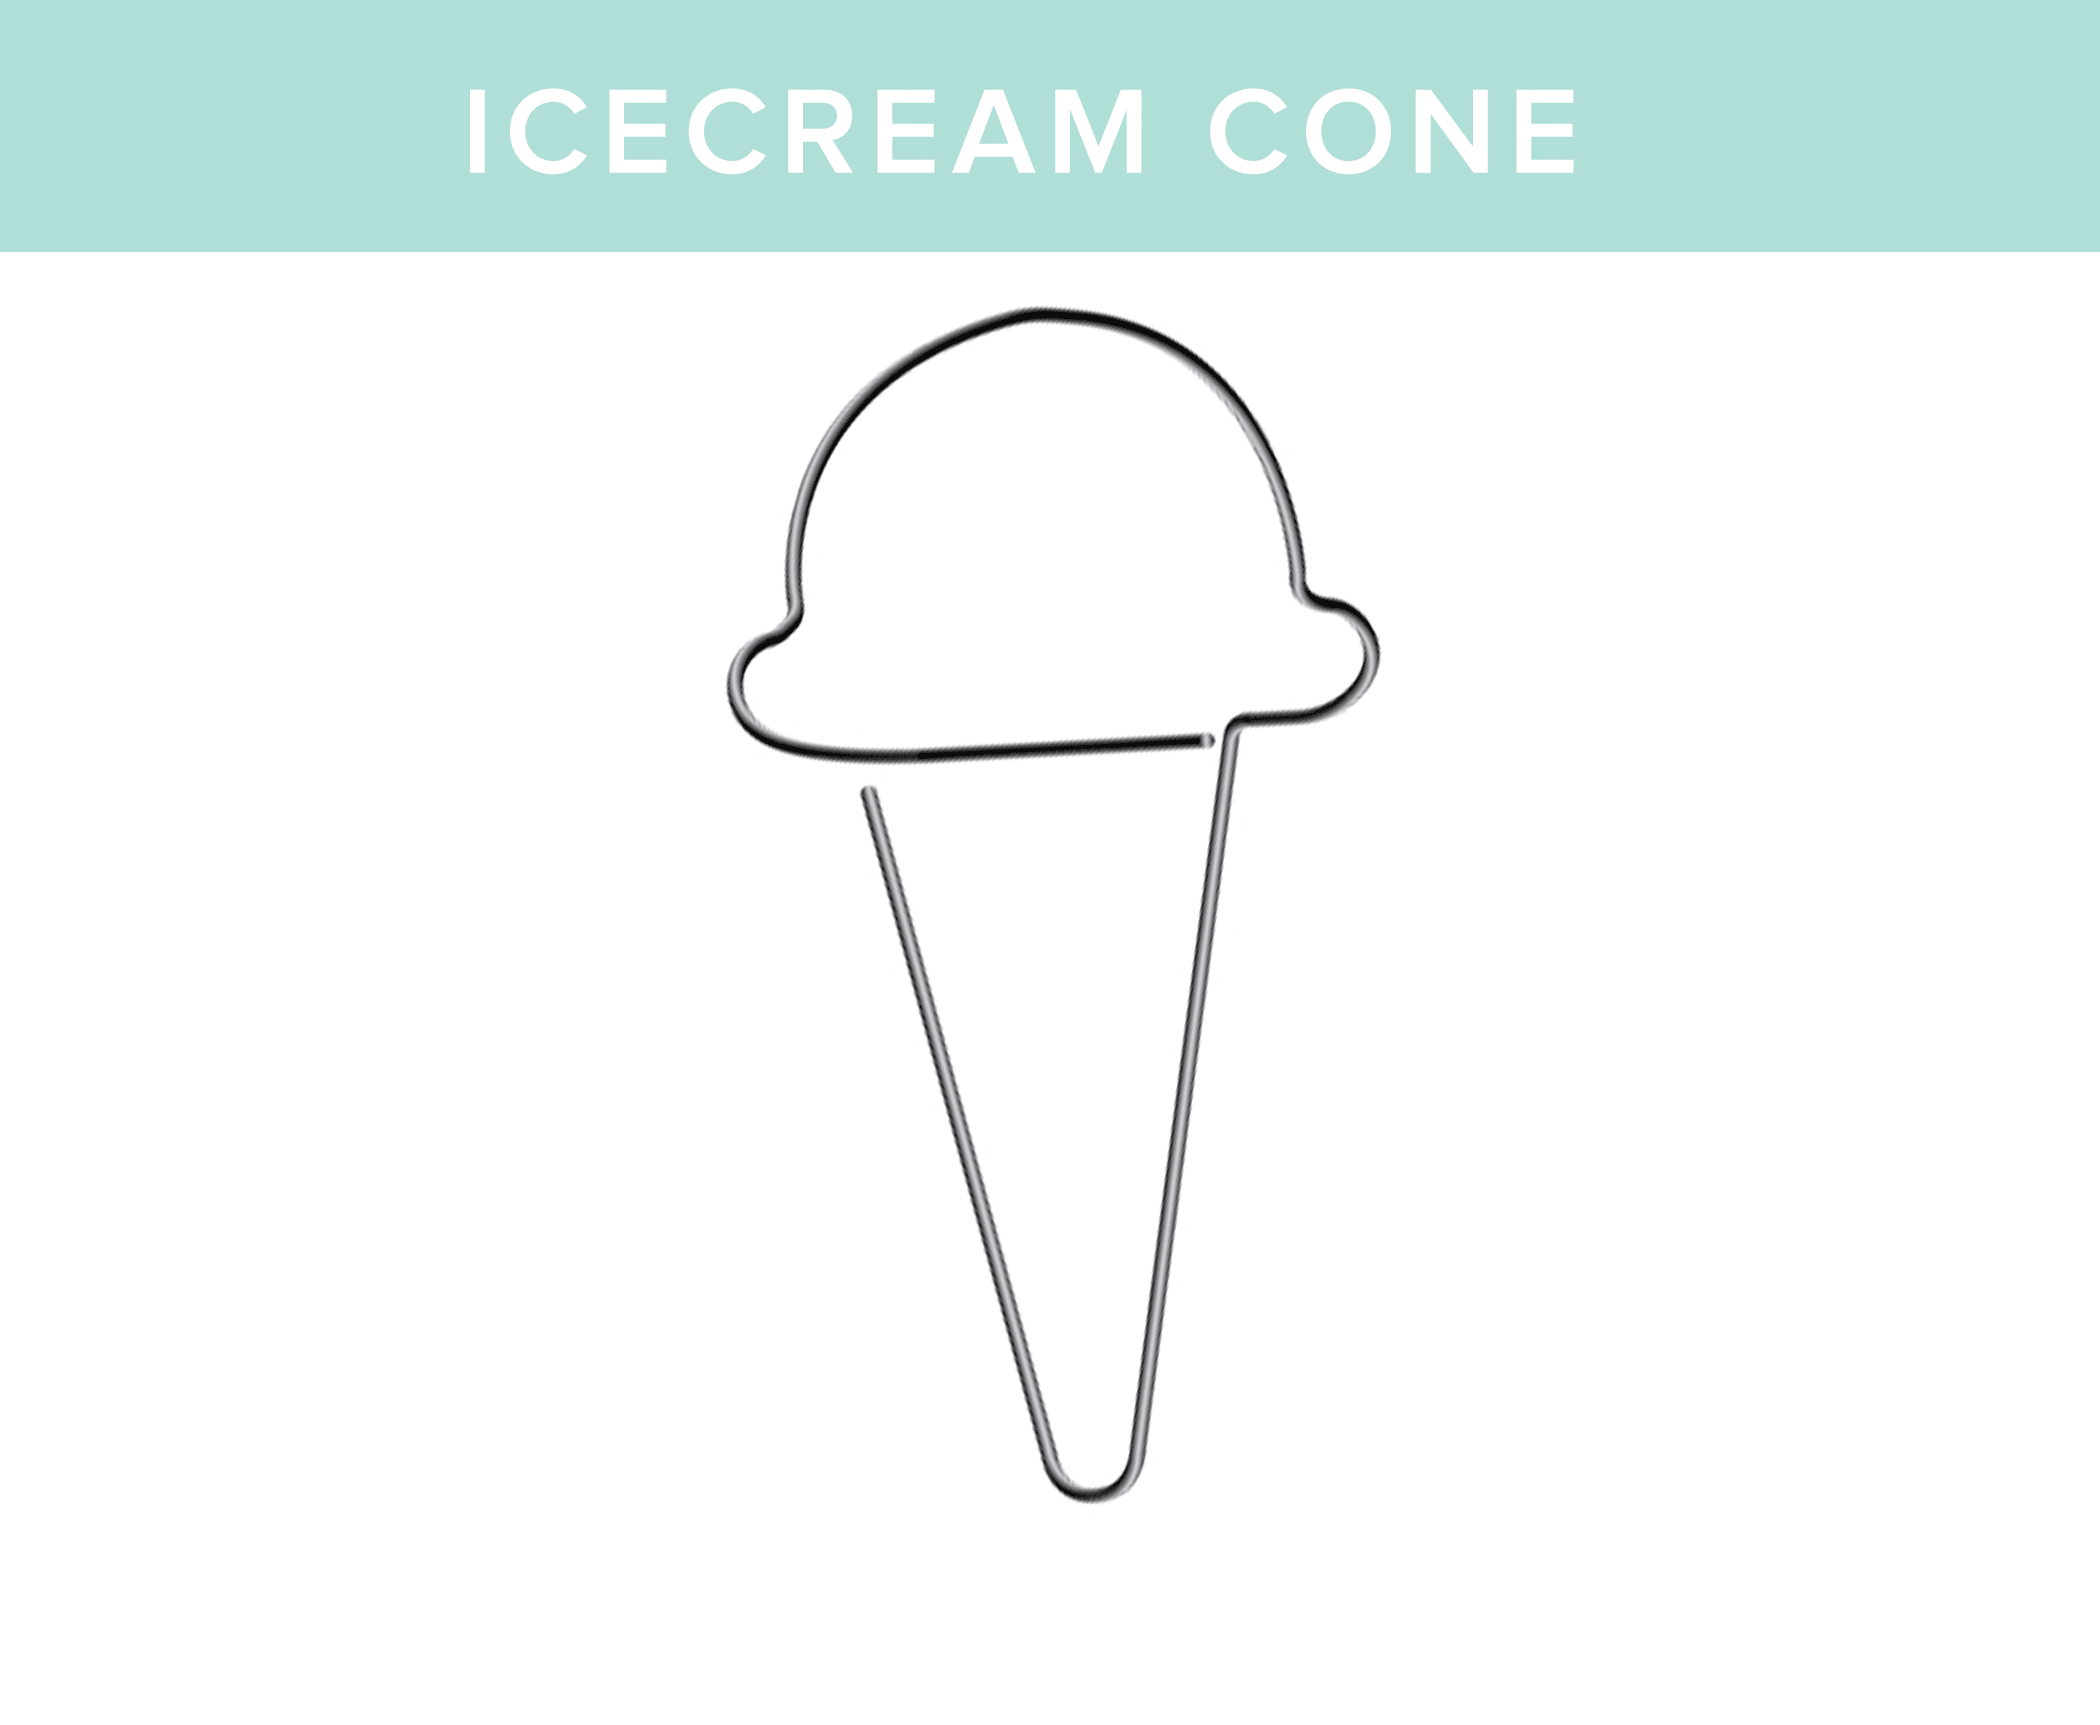 Happy-Jig-Website-TemplateICECREAM